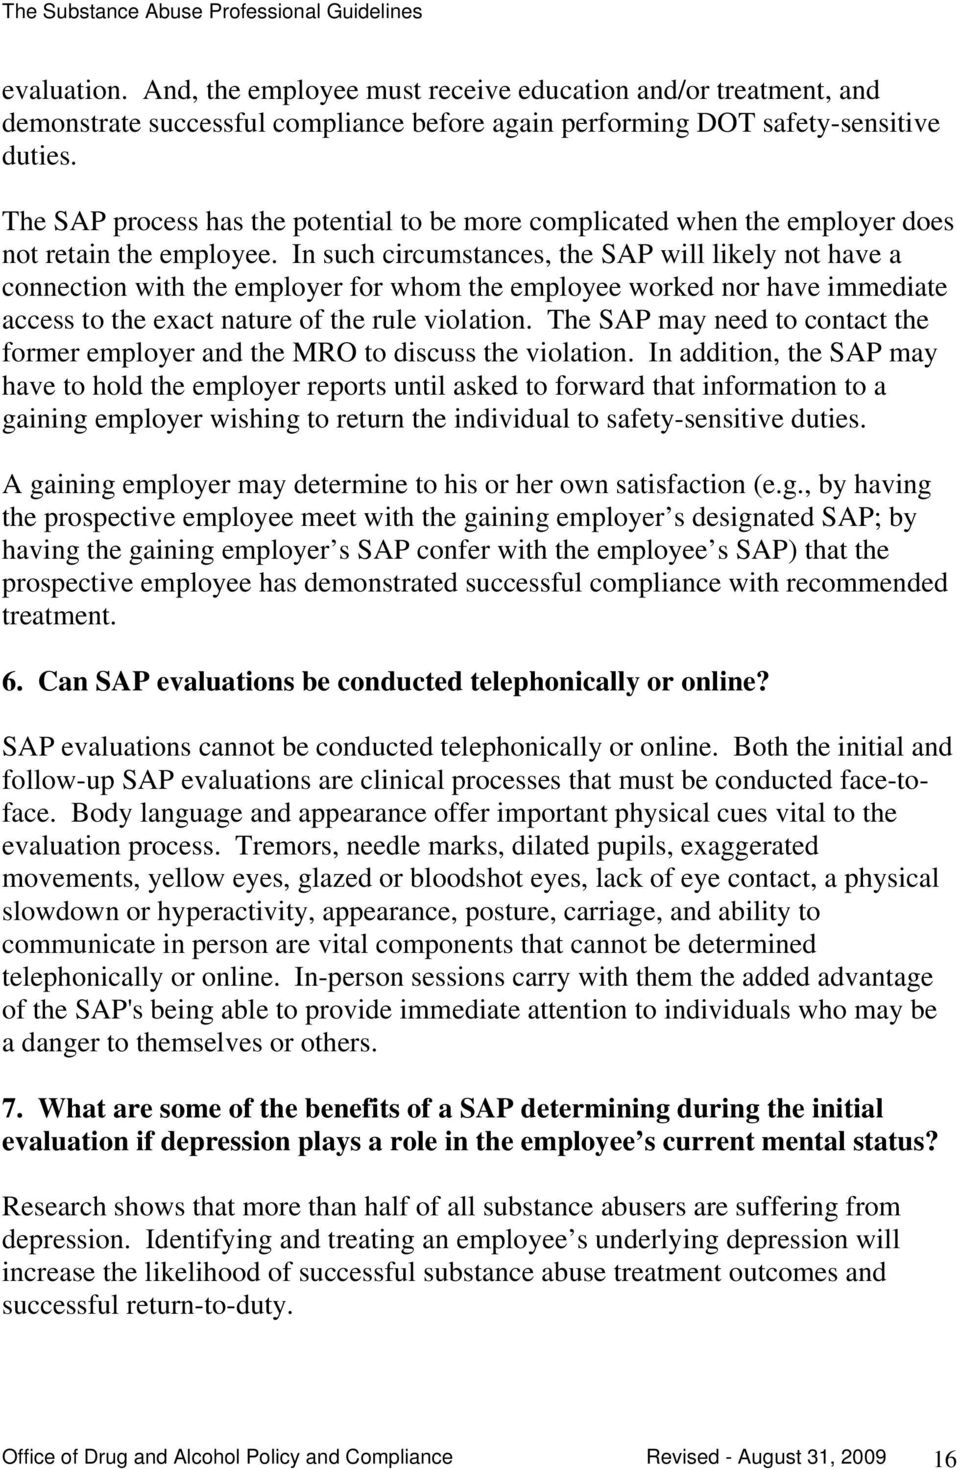 In such circumstances, the SAP will likely not have a connection with the employer for whom the employee worked nor have immediate access to the exact nature of the rule violation.